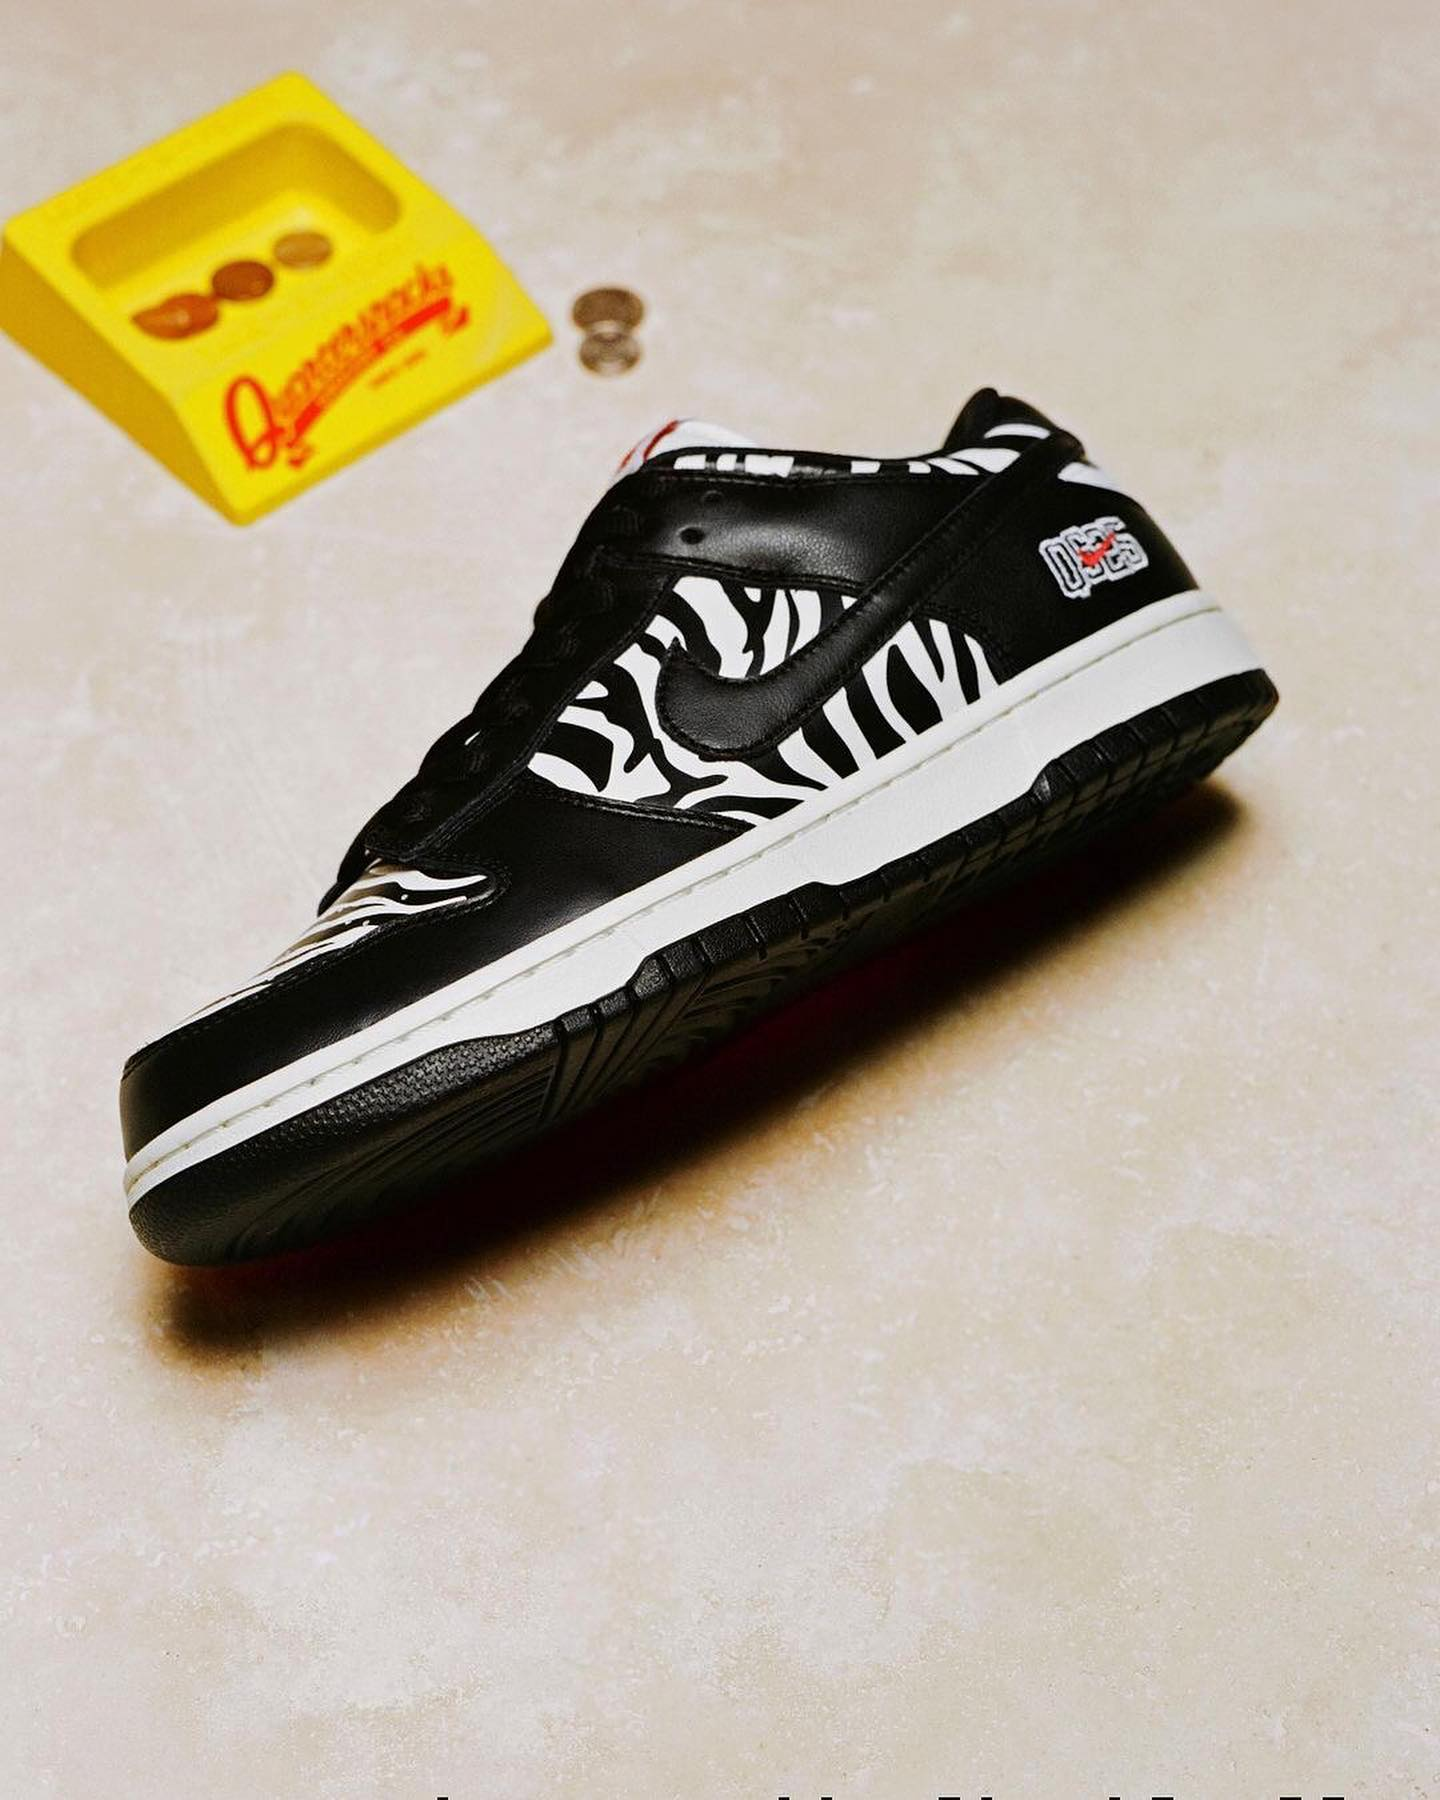 🗣 @nikesb Mixing black leather overlays and zebra-striped paneling that extends from toe box to heel, the @quartersnacks Dunk Low takes inspiration from on-the-cheap candy counter nostalgia. Learn more at NikeSB.com.